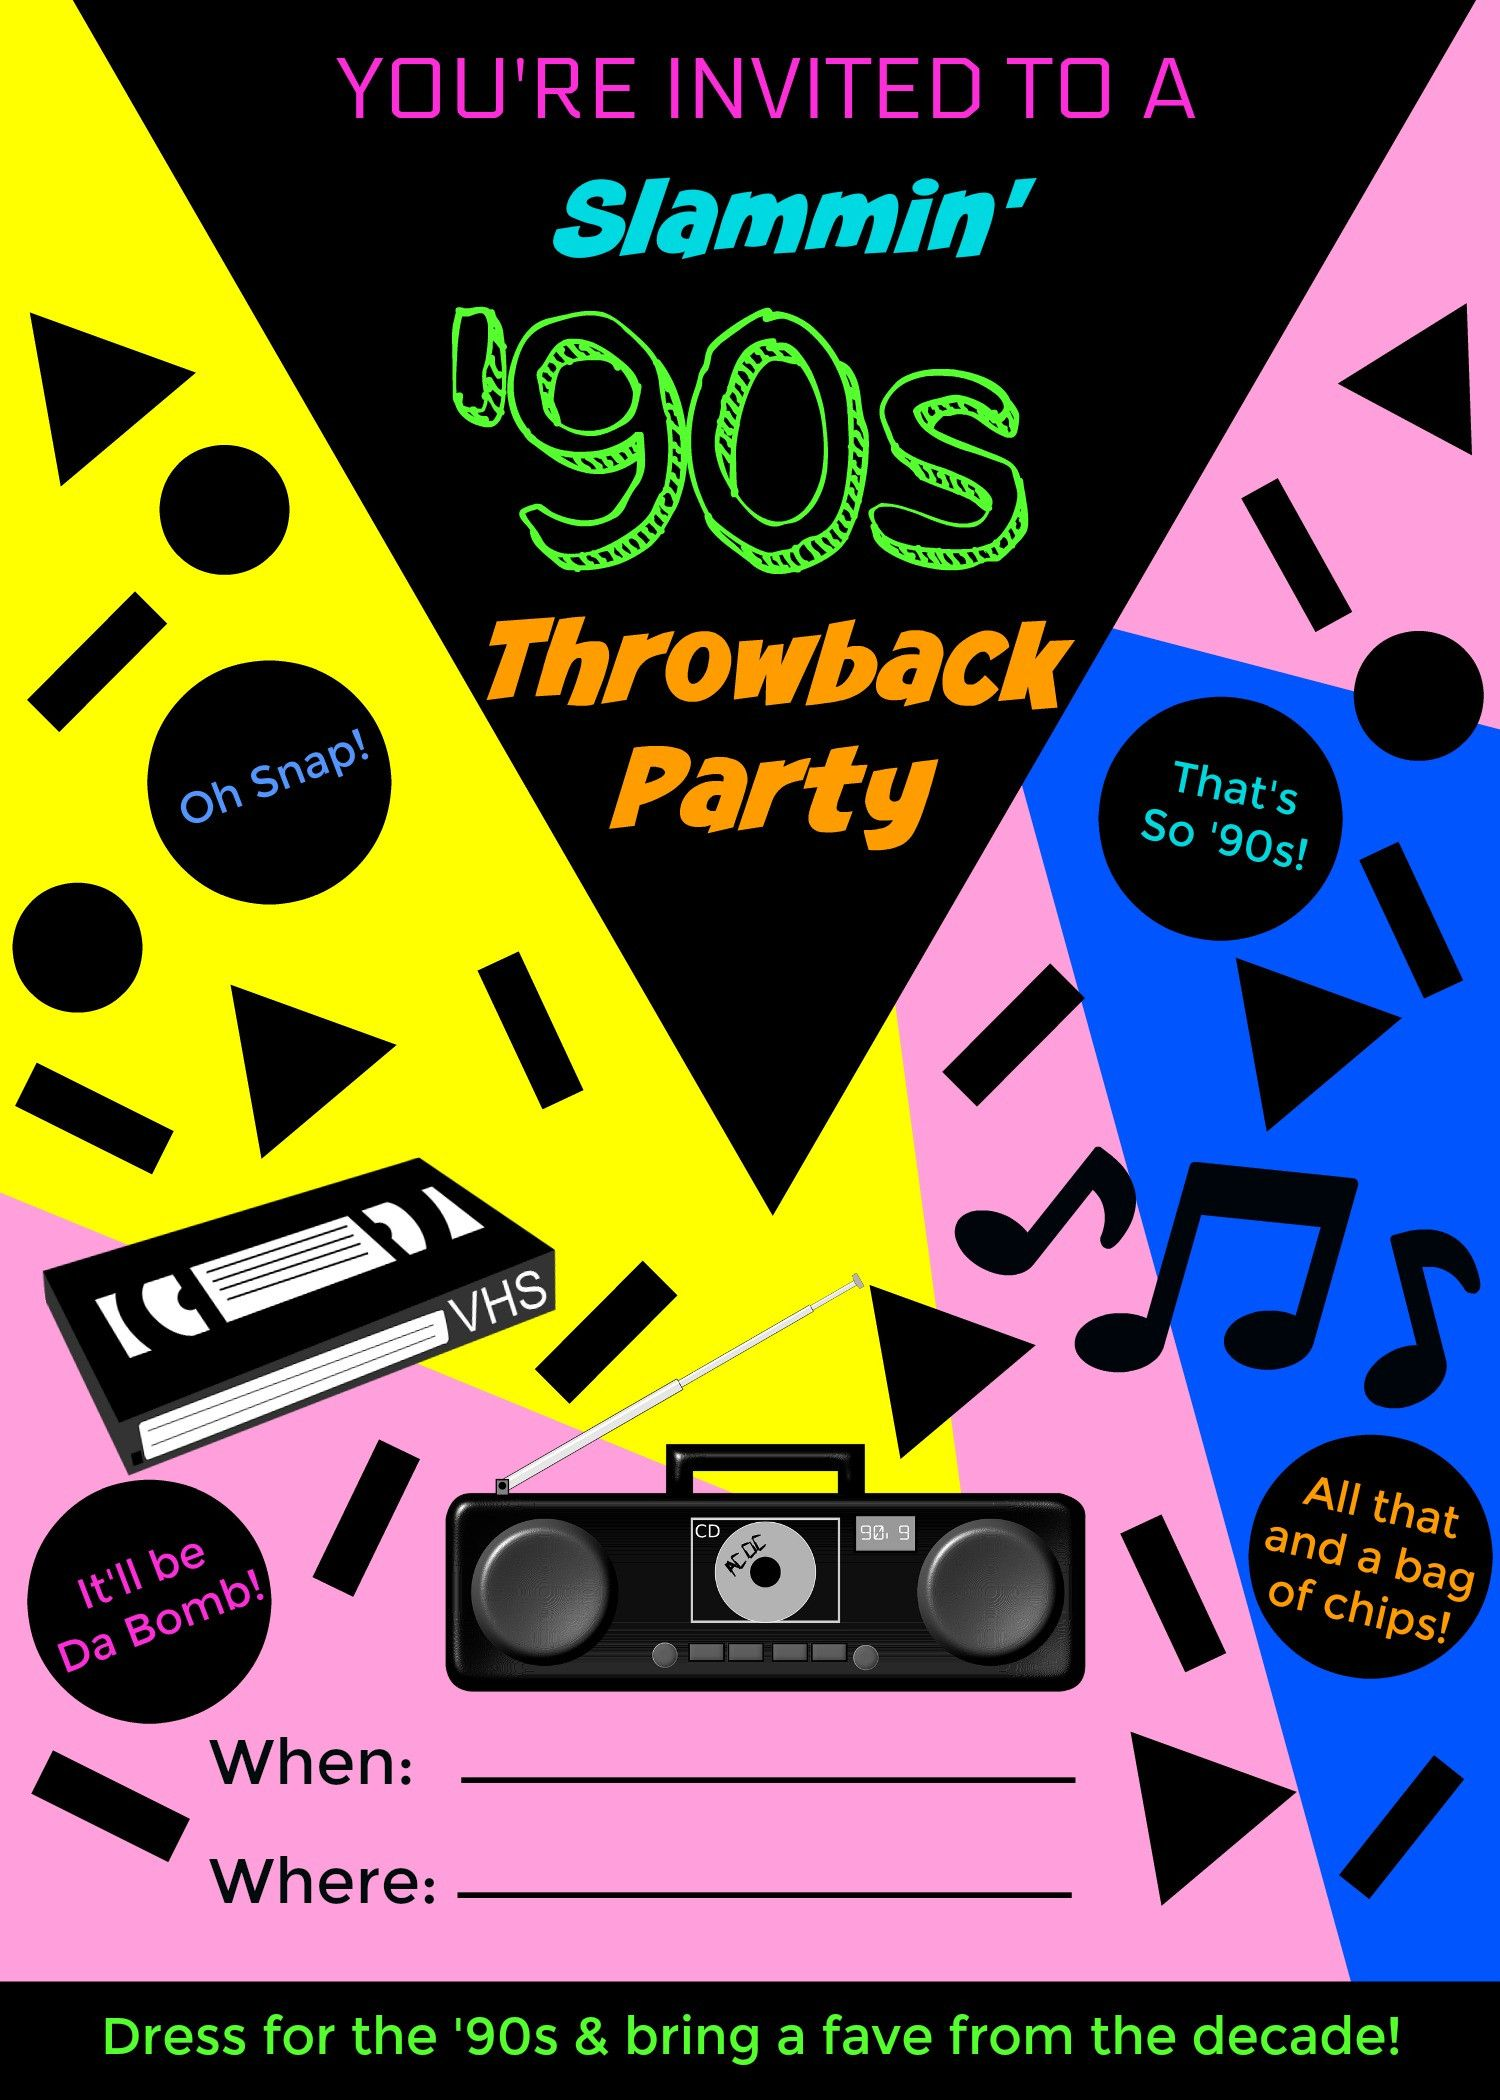 90s Party Invitation Wording Oxyline 09e7fc4fbe37 From Halloween Invite For Adults Sourceoxyline